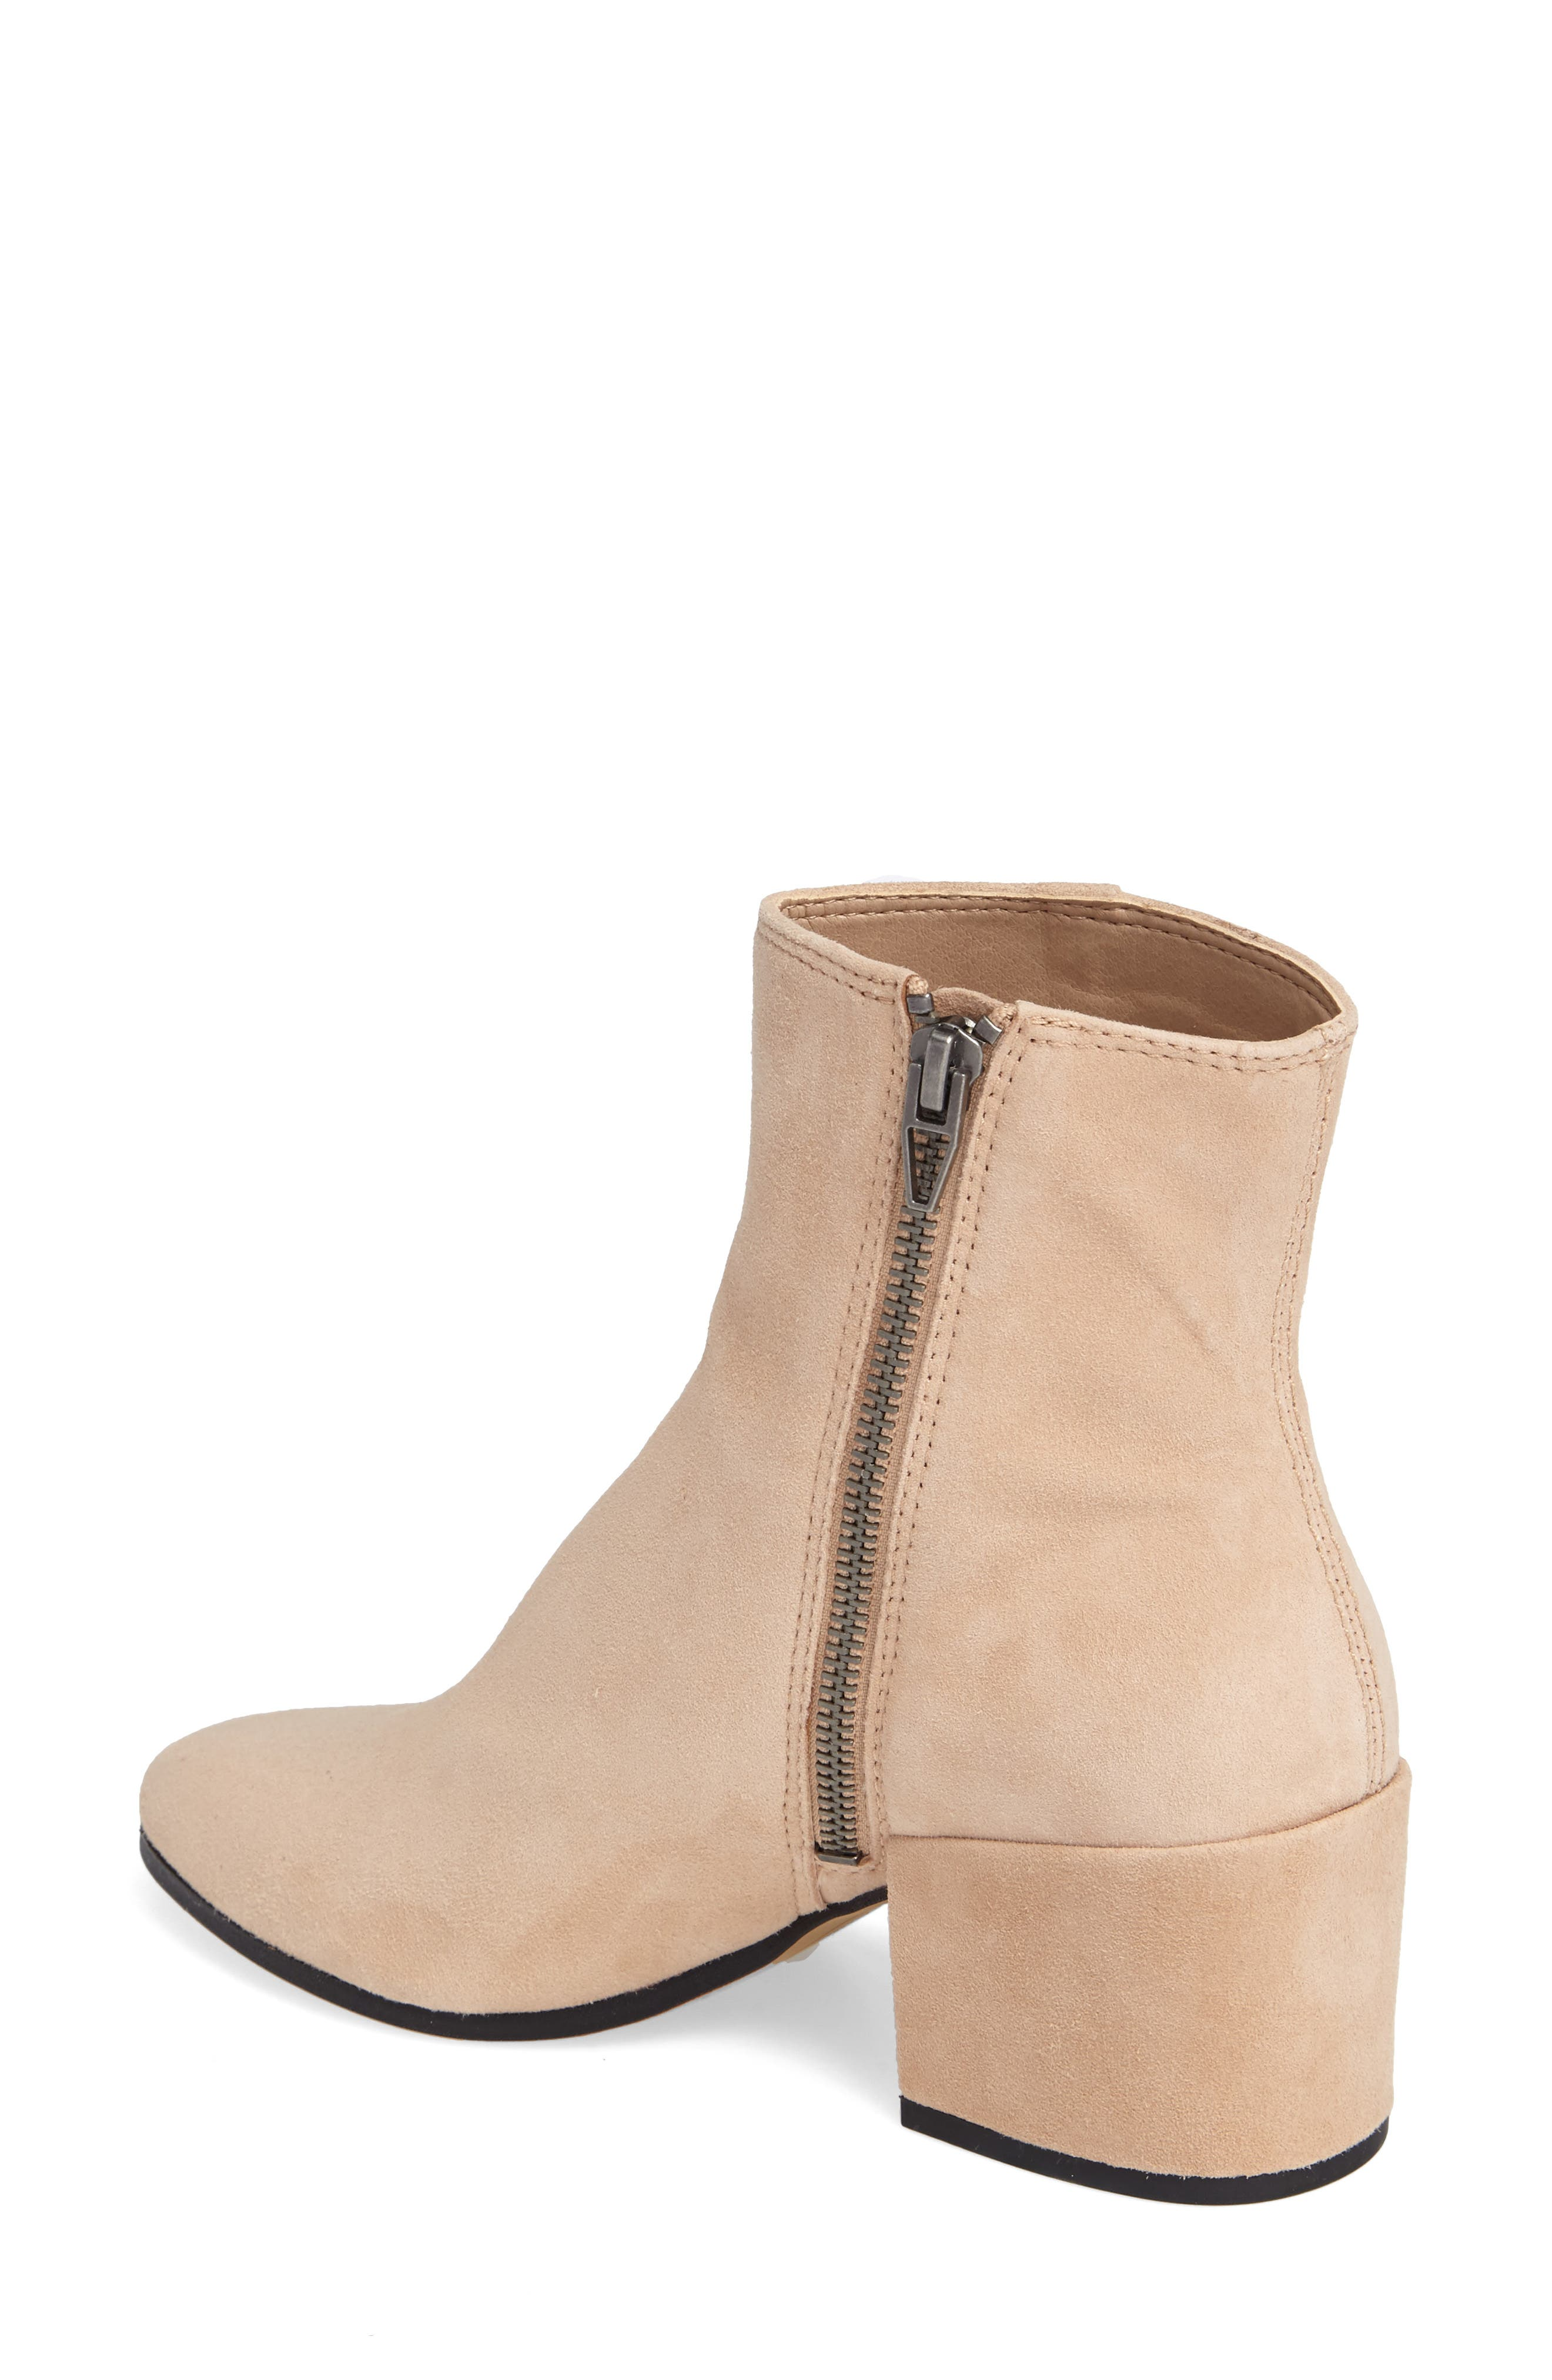 Alternate Image 2  - Dolce Vita Maude Block Heel Bootie (Women)